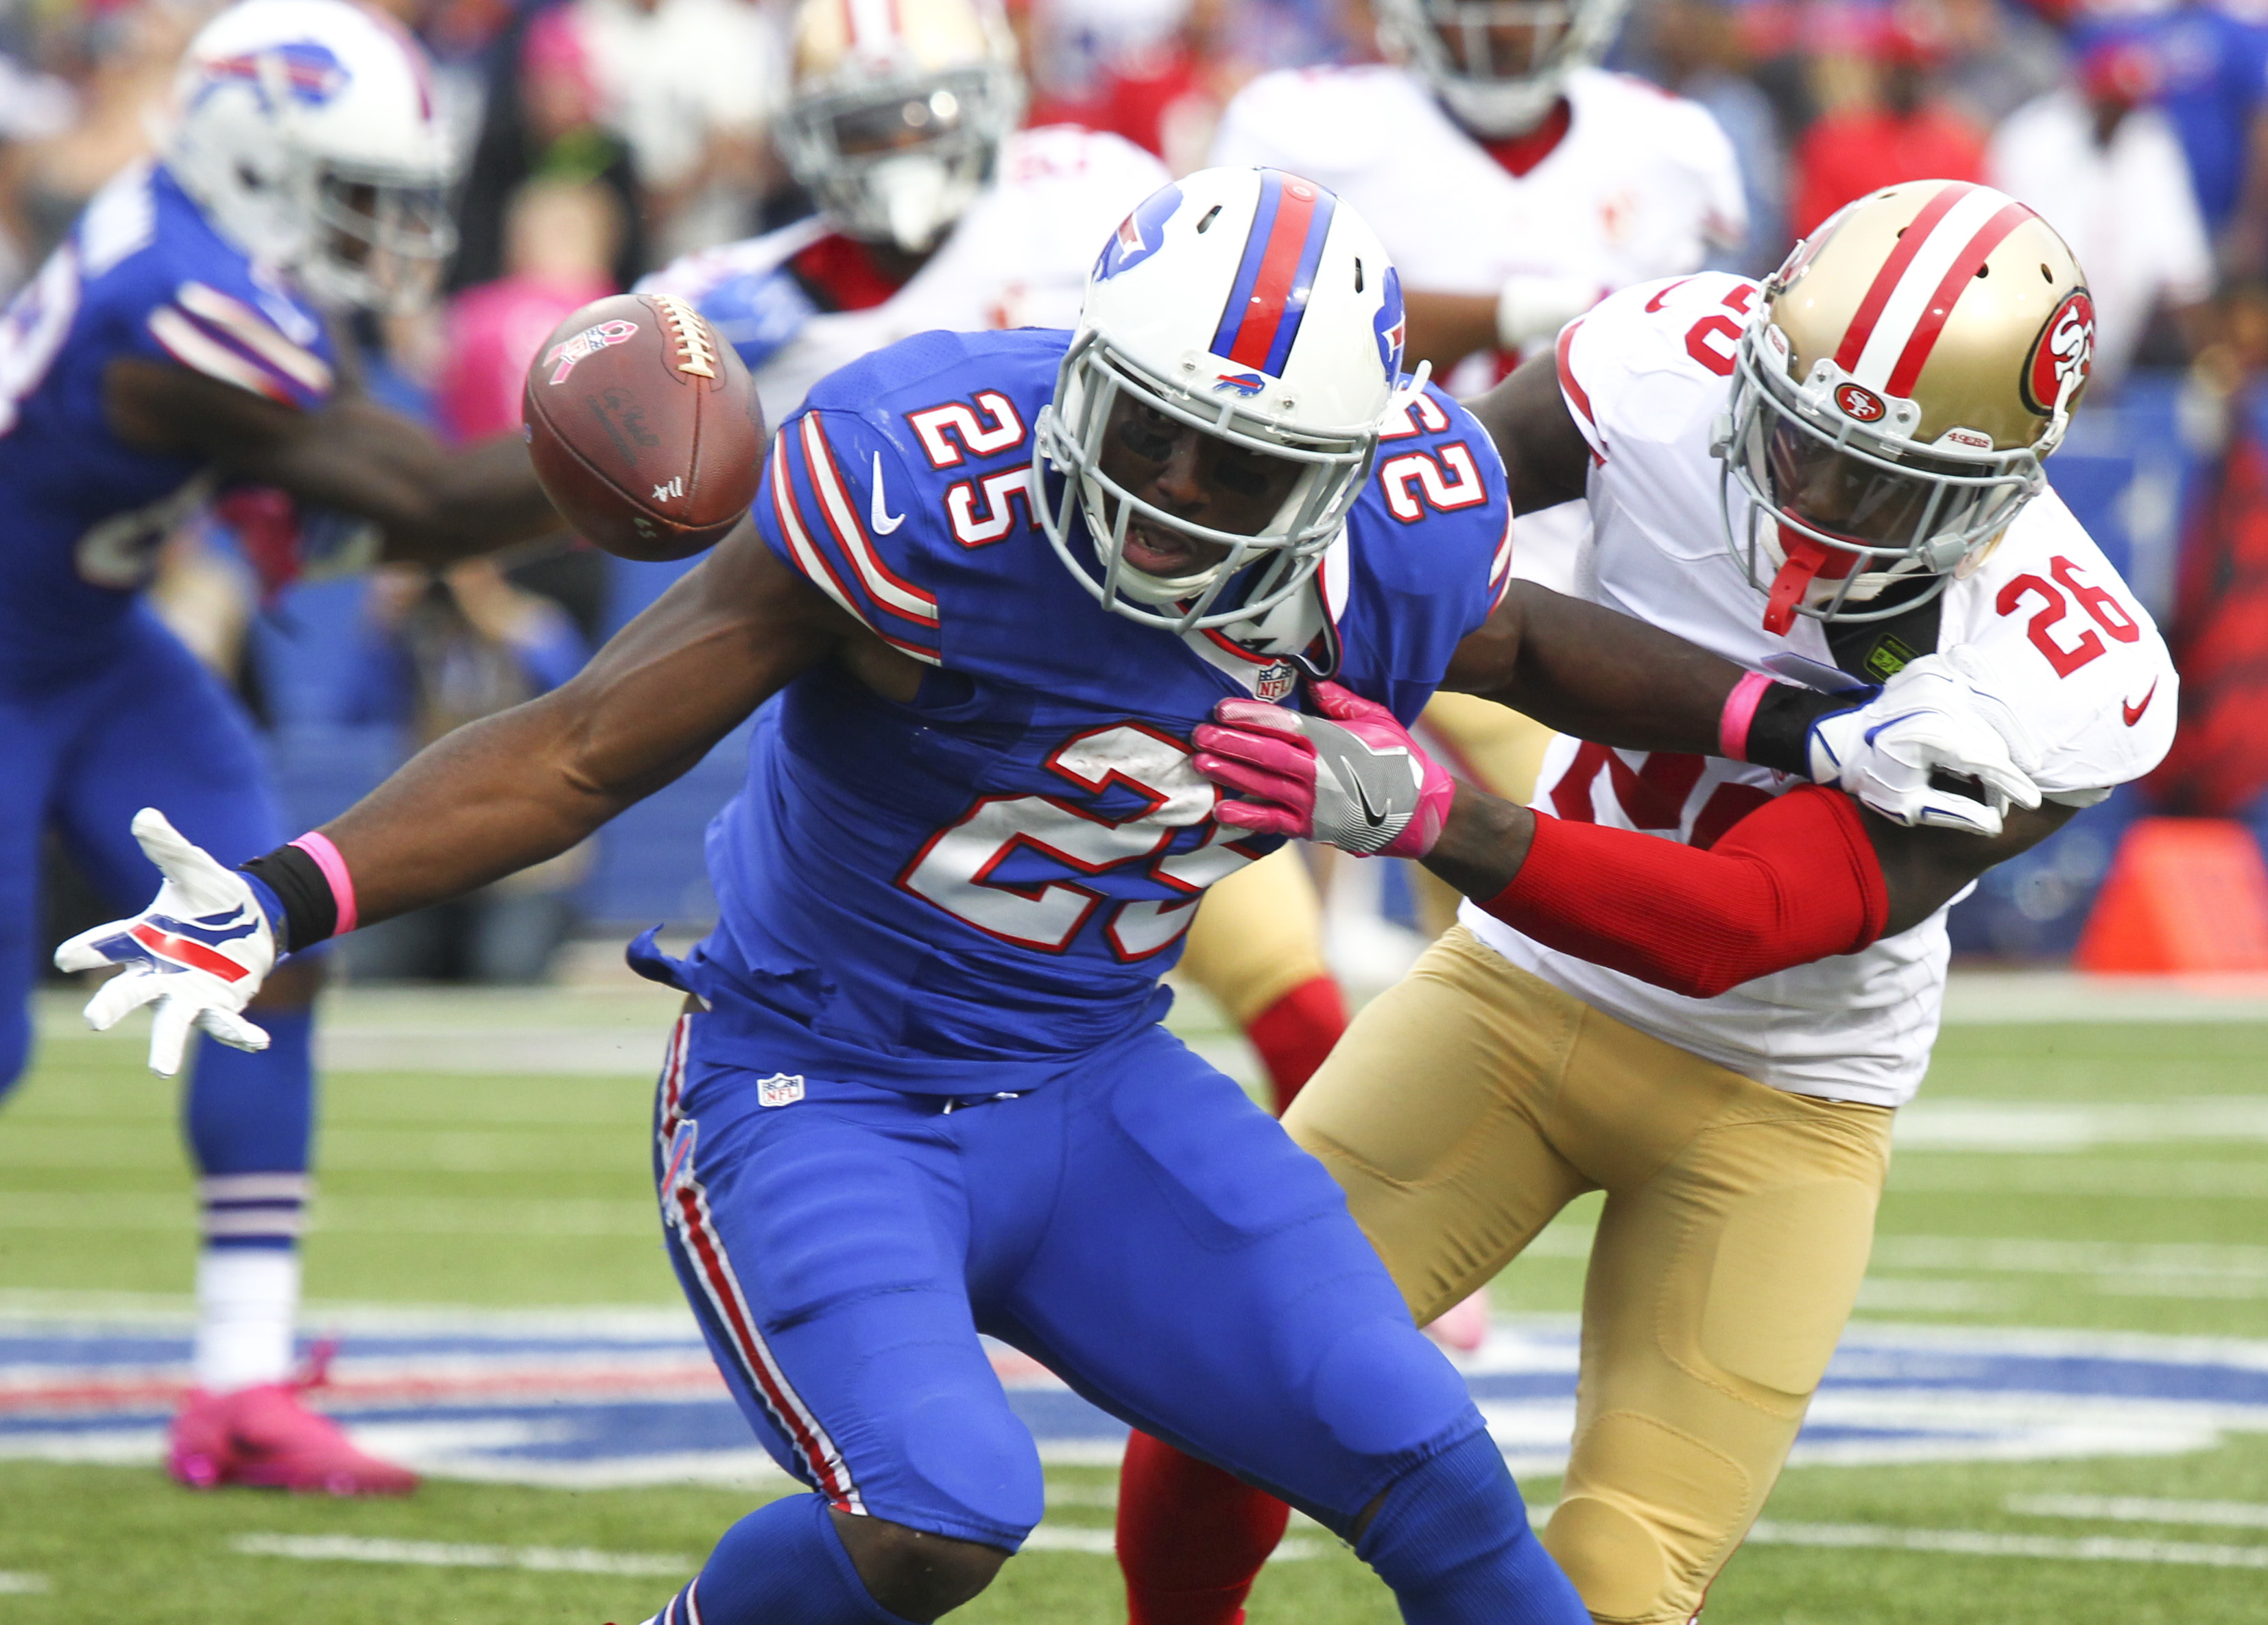 Buffalo Bills running back LeSean McCoy (25) loses the ball momentarily as he is hit by San Francisco 49ers cornerback Tramaine Brock (26) during the second half of an NFL football game on Sunday, Oct. 16, 2016, in Orchard Park, N.Y. (AP Photo/Jeffrey T.